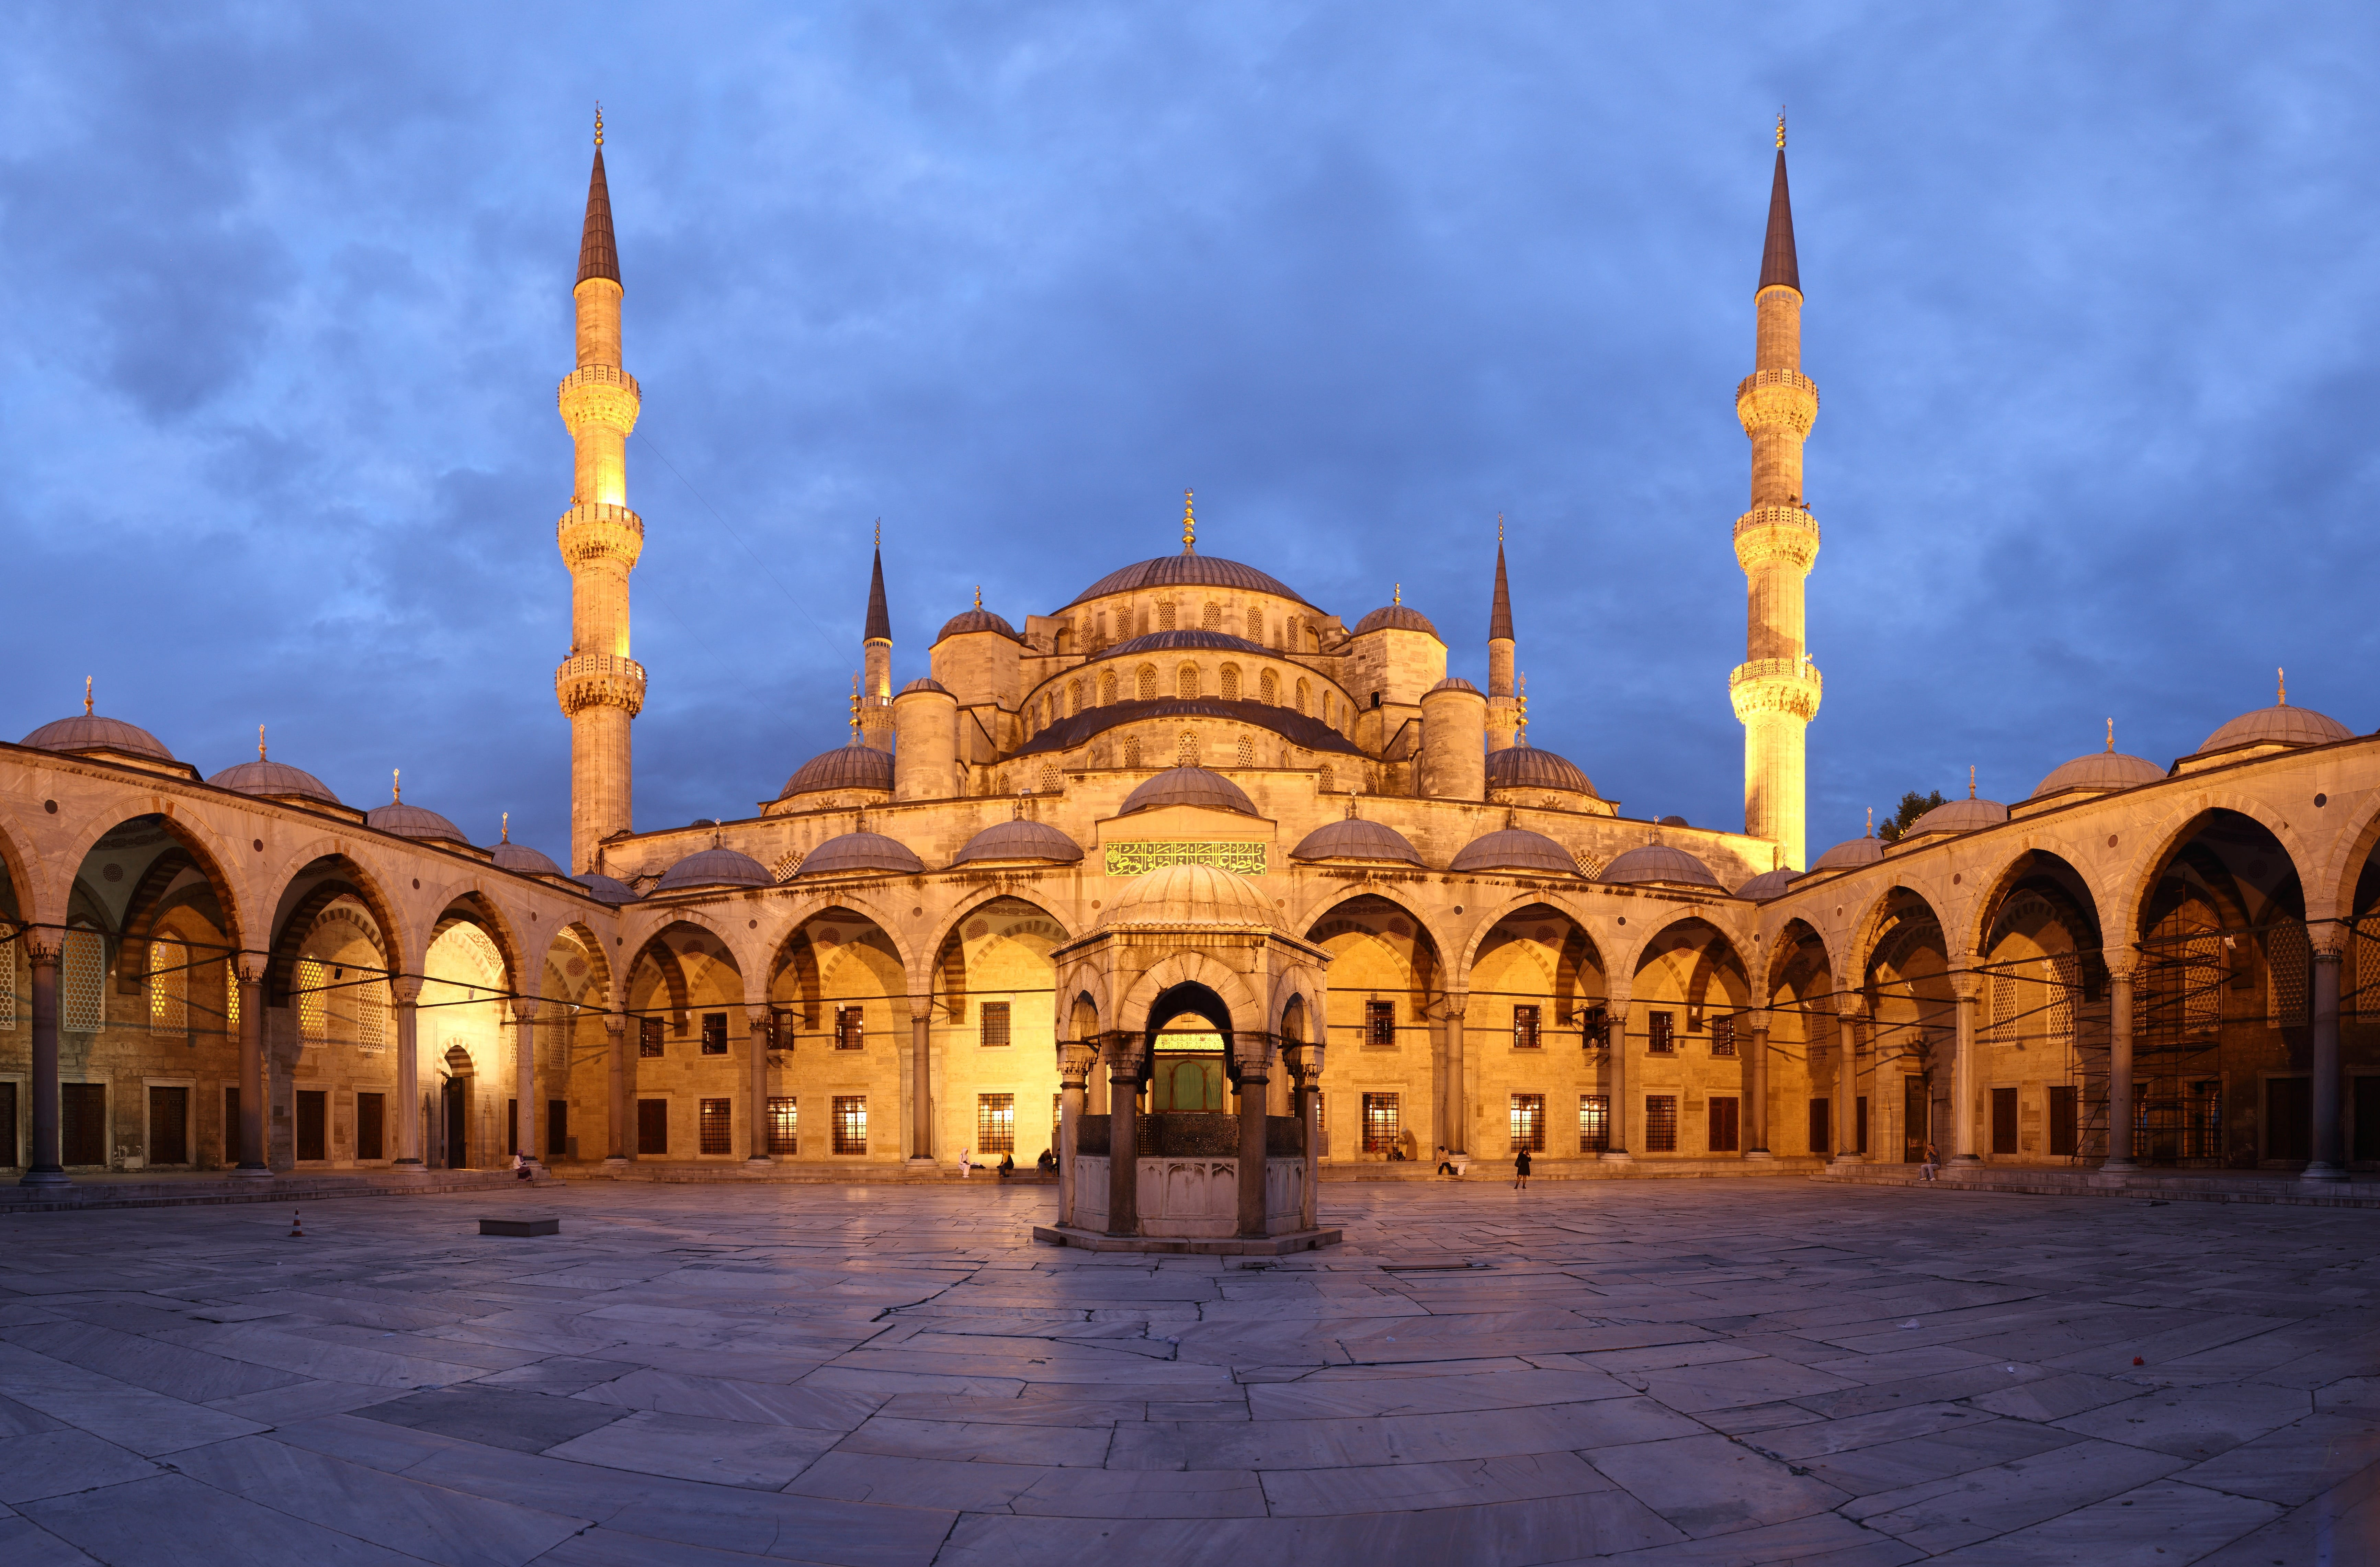 Gif Fliegender Teppich The History Of The Blue Mosque In Turkey British Muslim